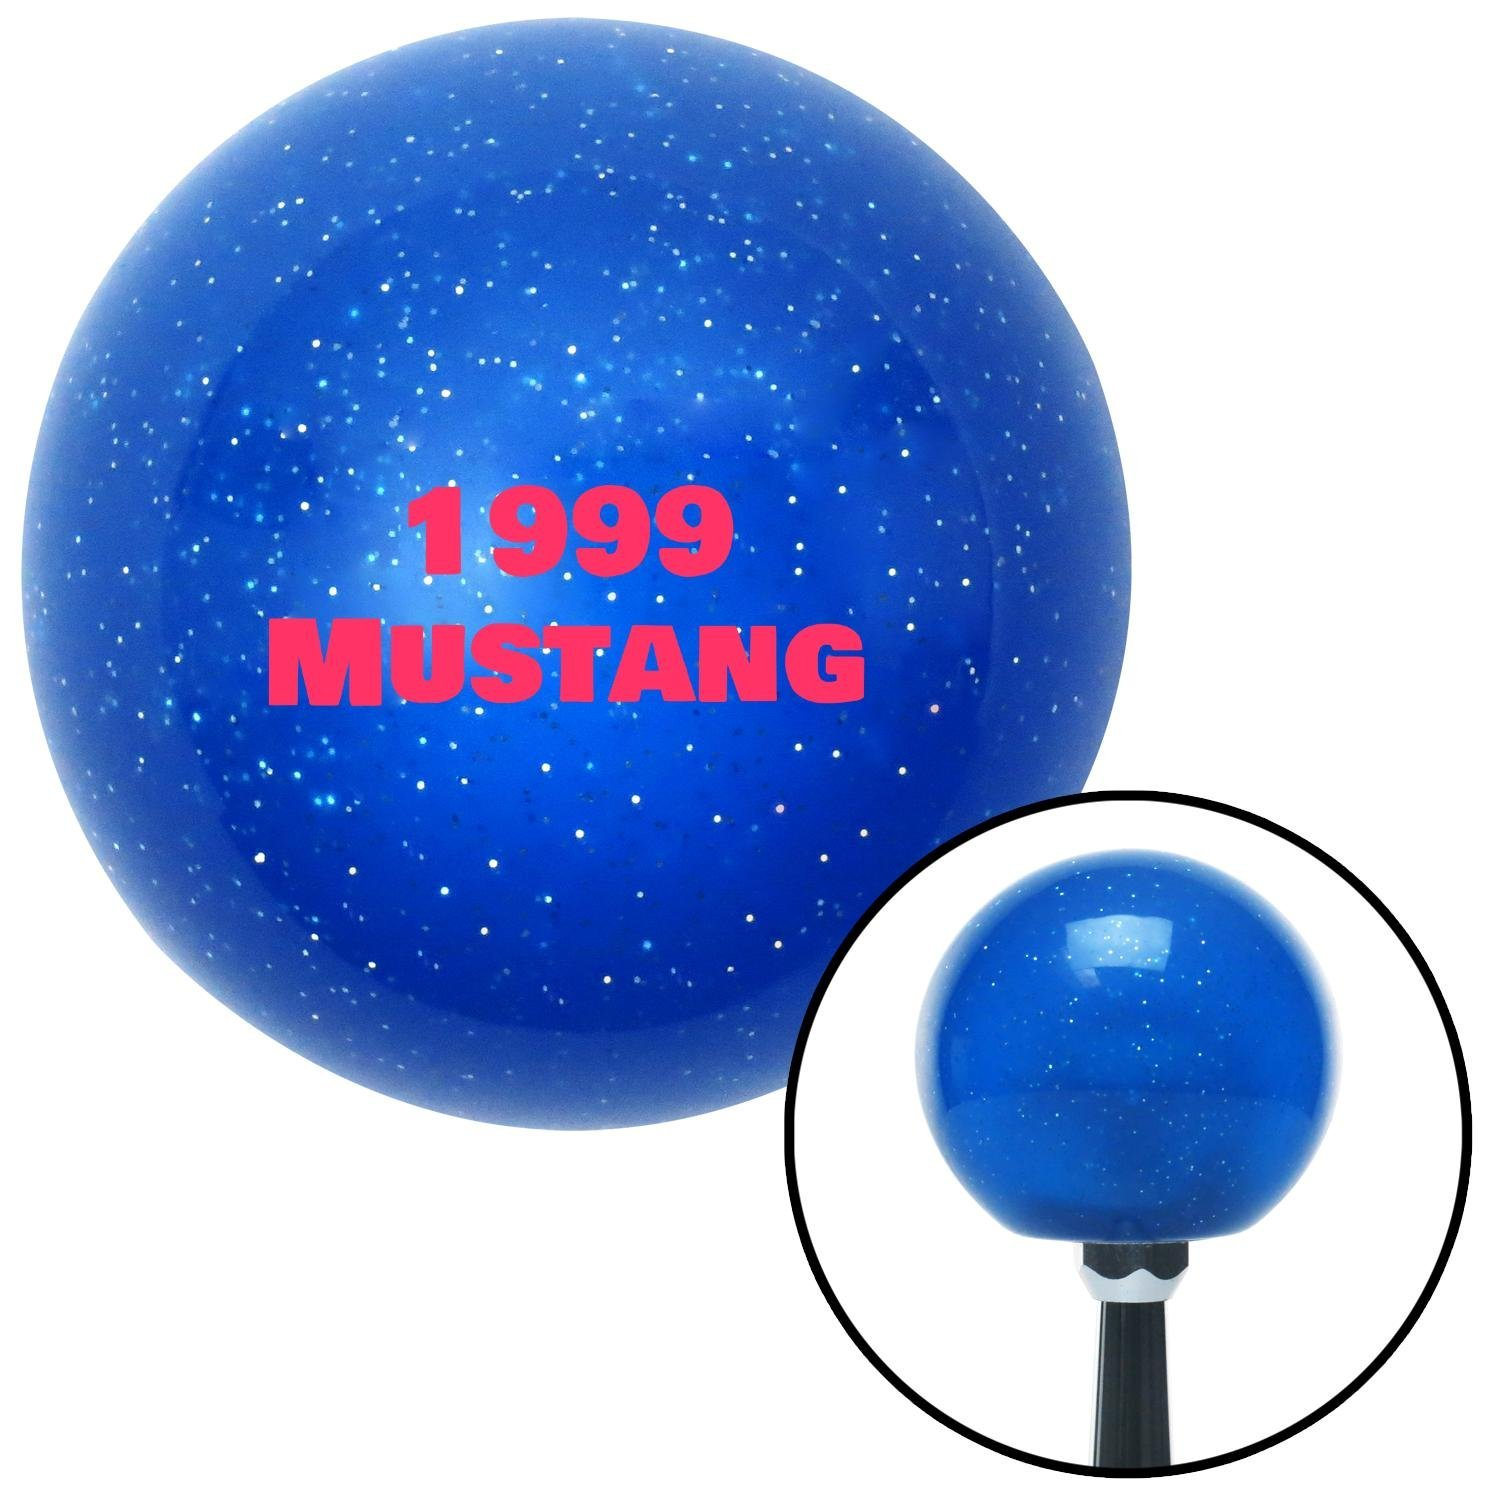 Pink 1999 Mustang American Shifter 140949 Blue Metal Flake Shift Knob with M16 x 1.5 Insert